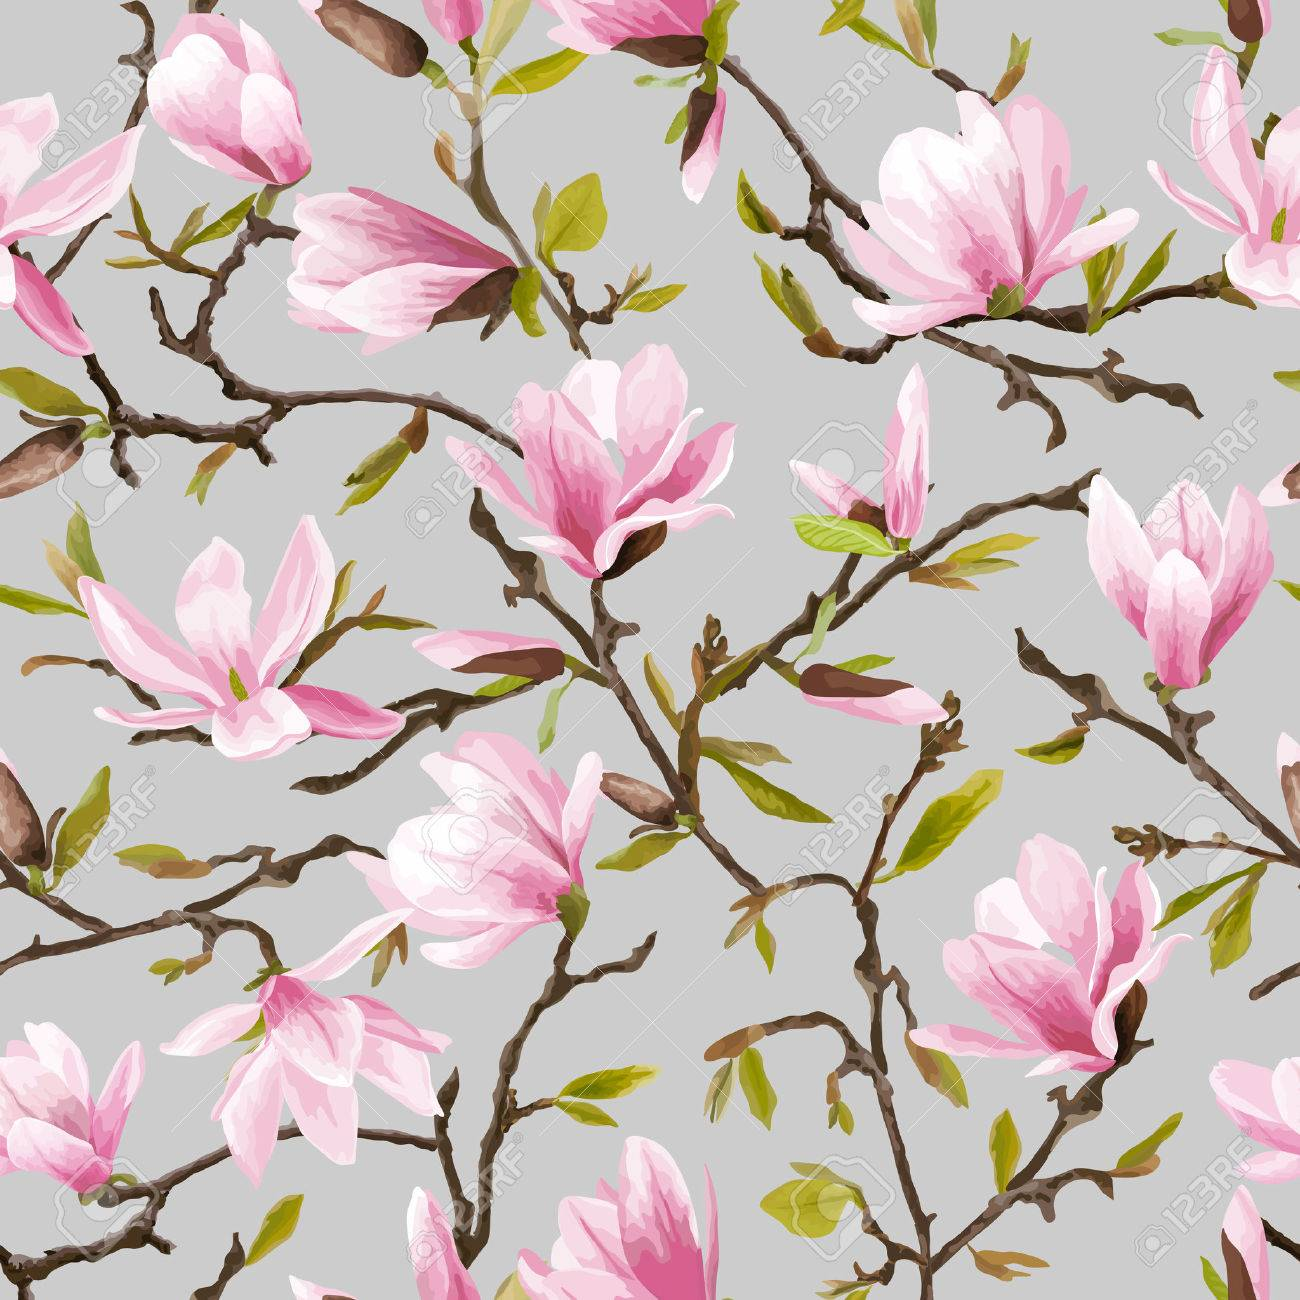 Seamless Floral Pattern Magnolia Flowers And Leaves Background